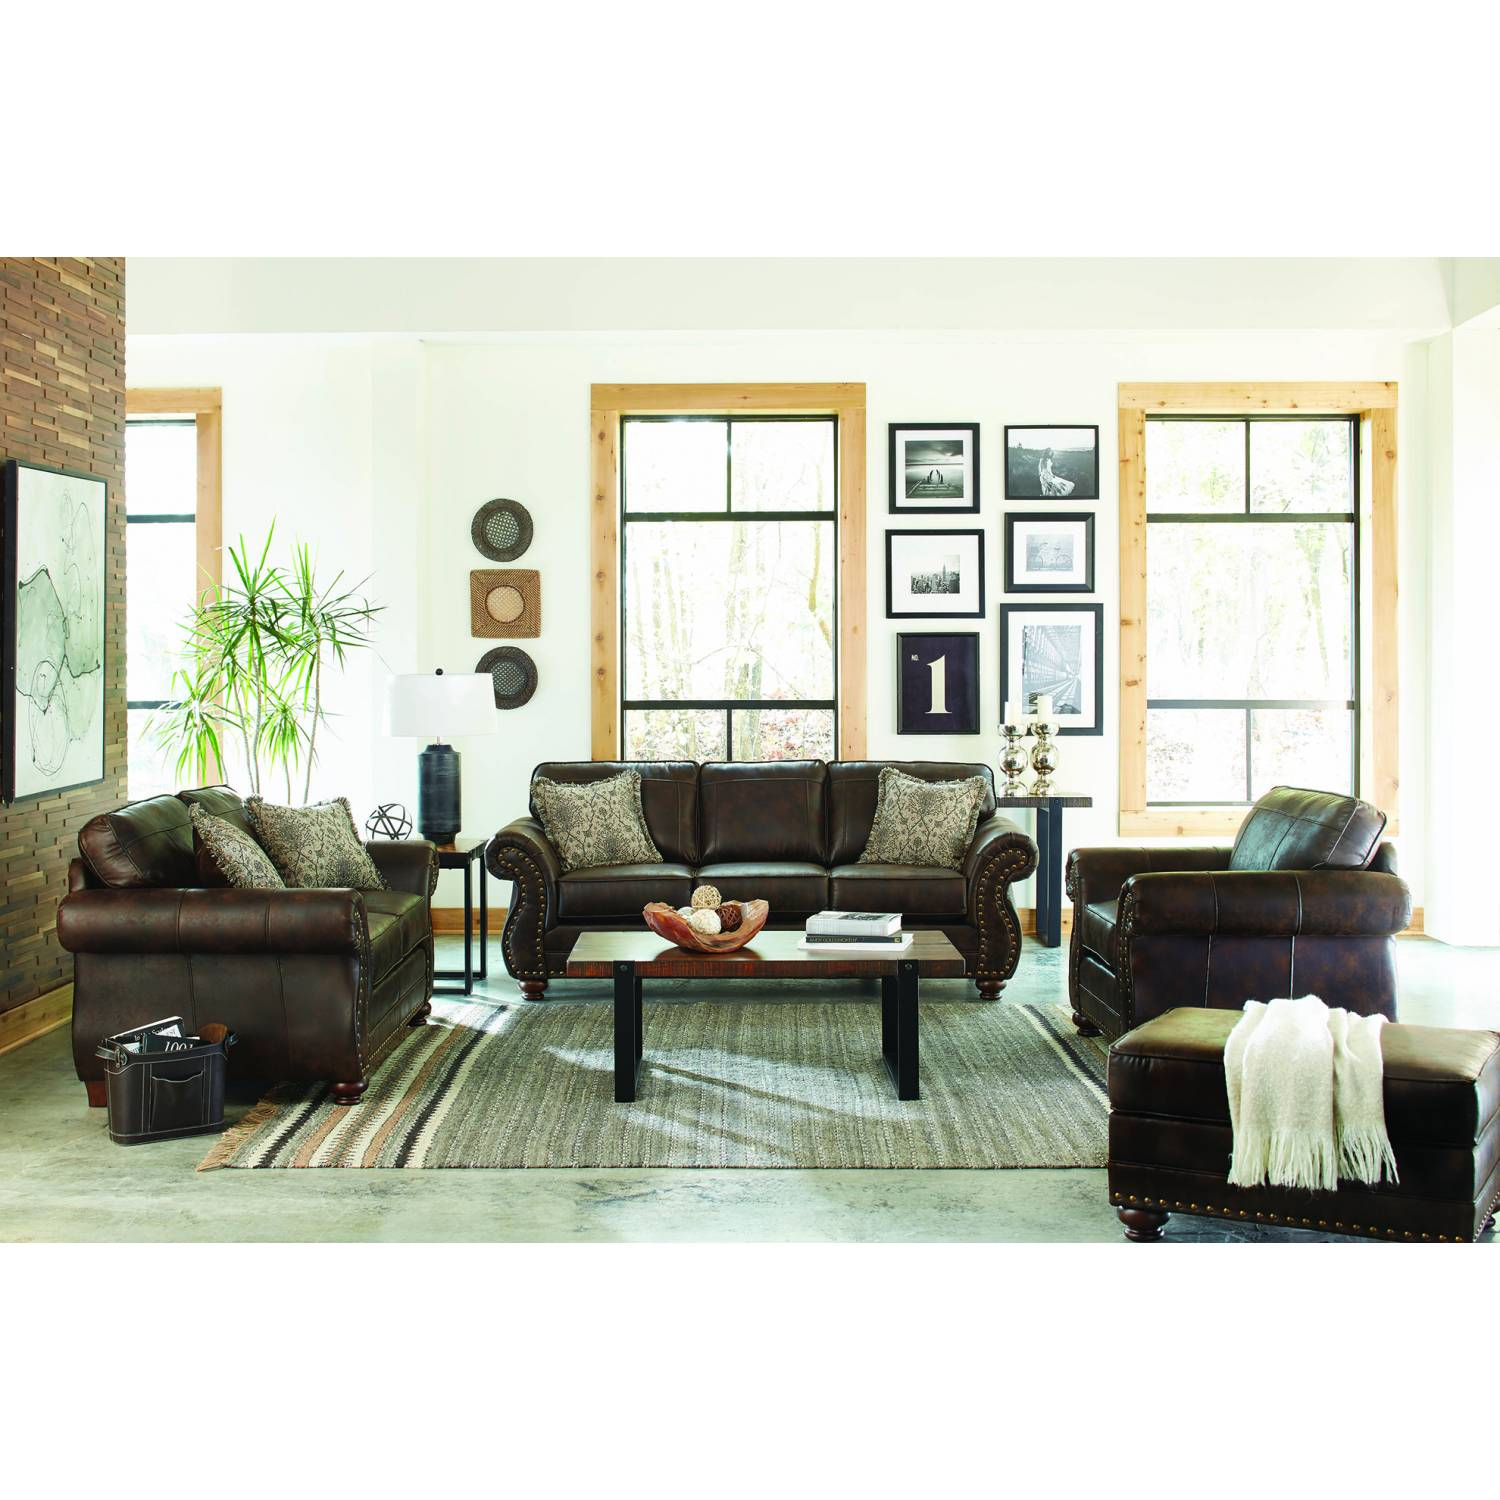 508891-S3 Graceville 3-Piece Living Room Set Brown